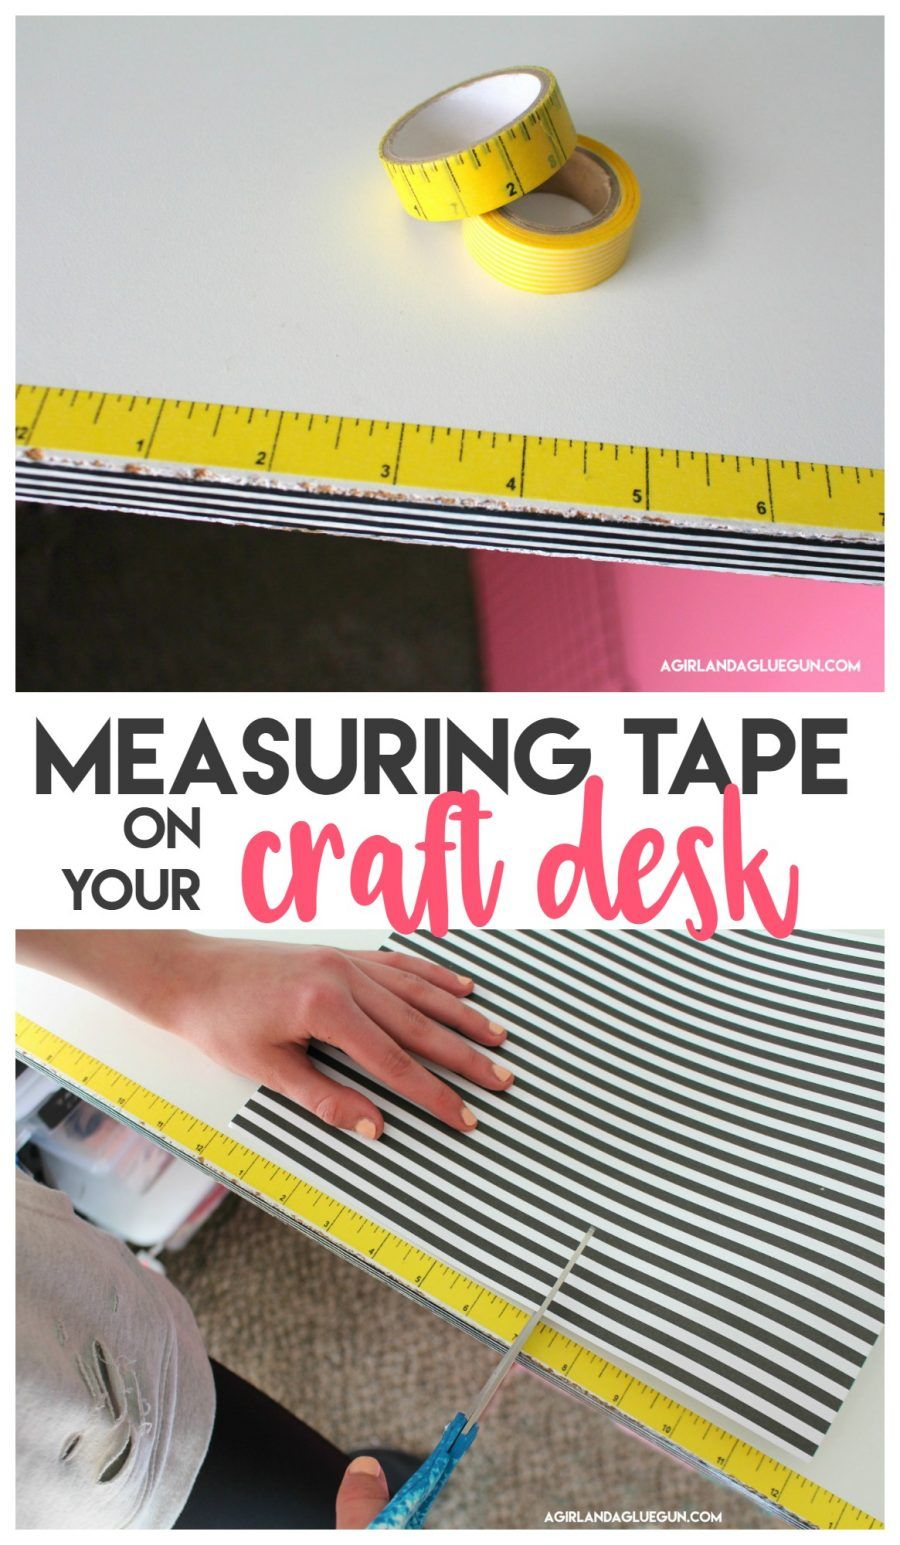 Measuring Tape on your craft desk #craftroomideas